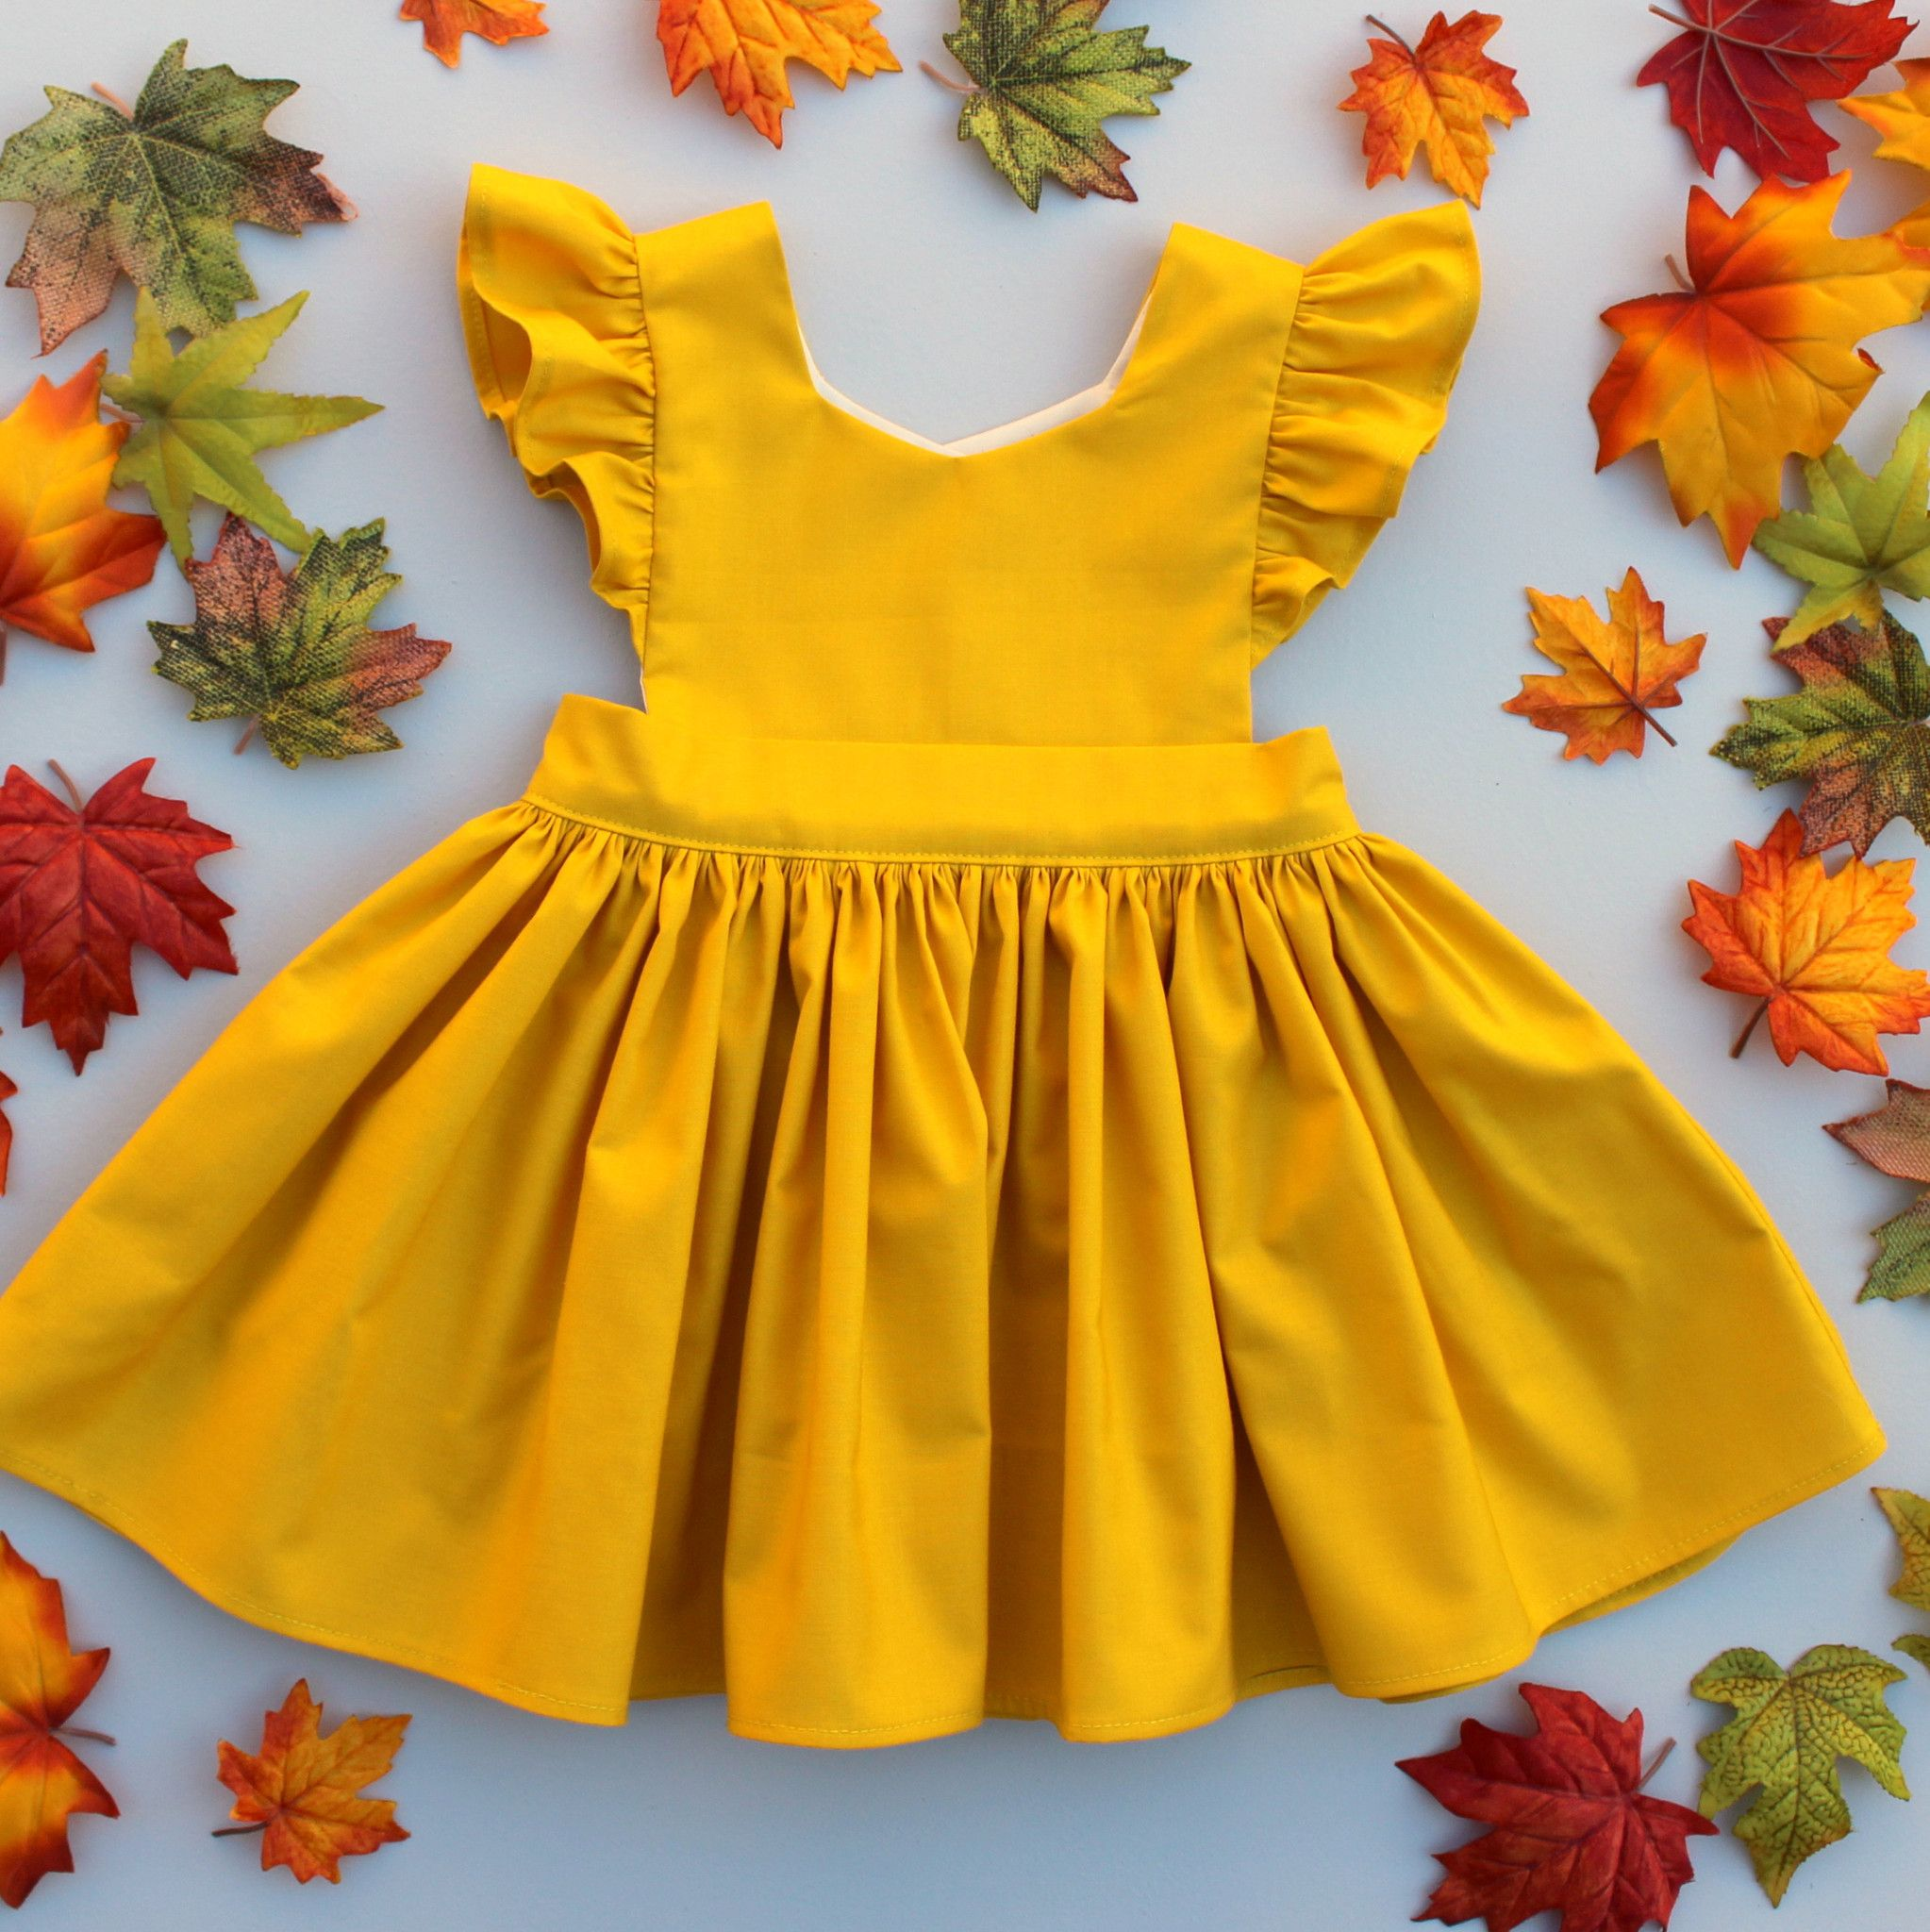 Cora Pinafore Dress In Mustard Baby Knits Pinterest Mustard